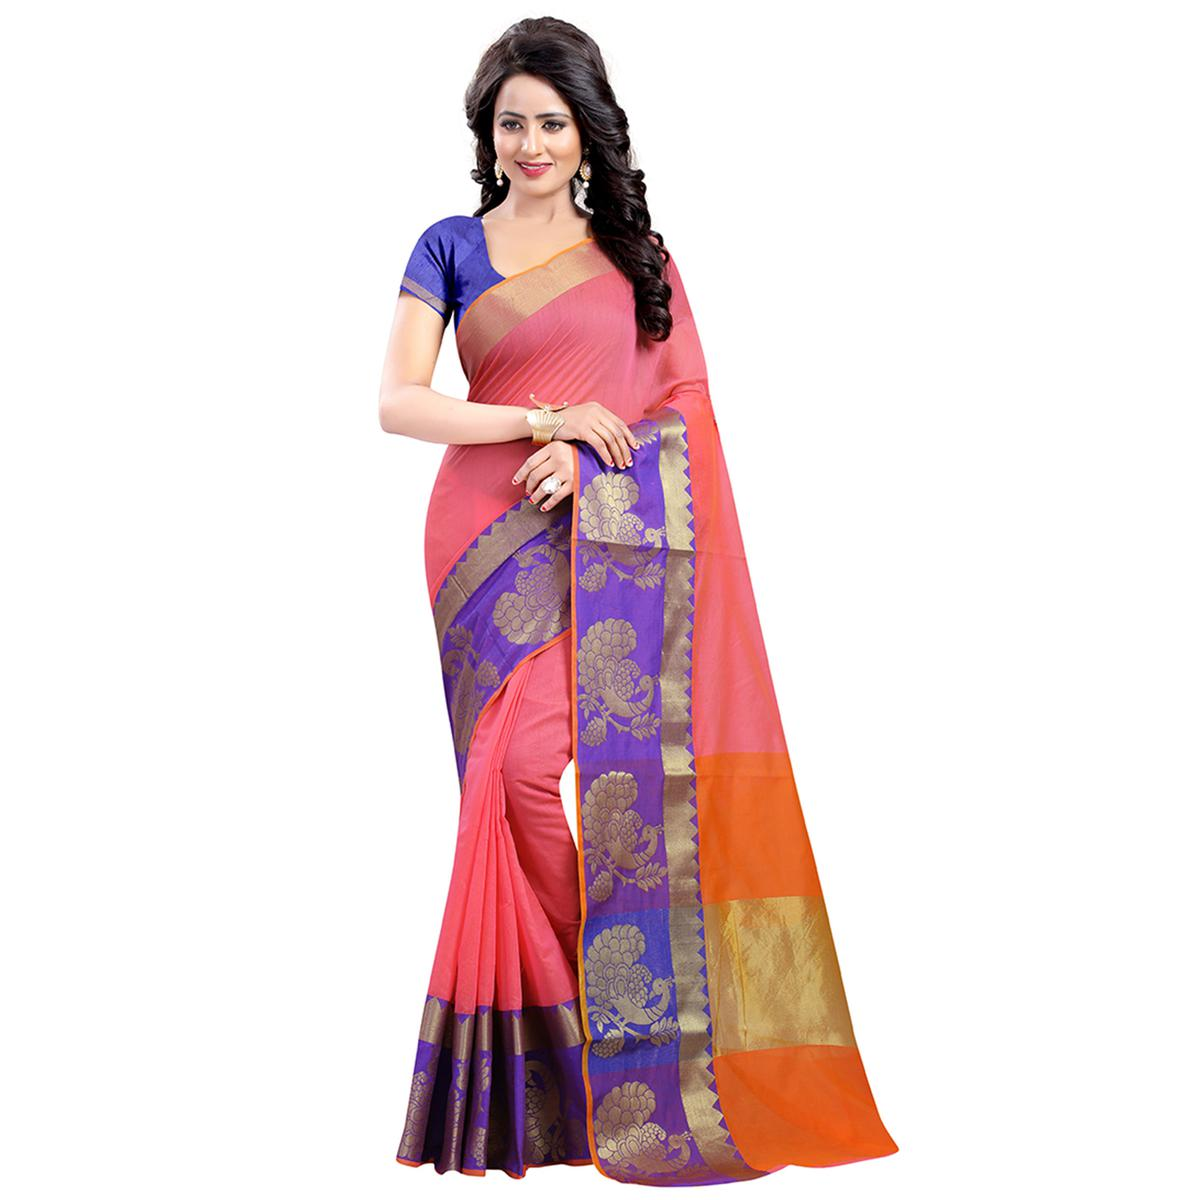 Integral Pink Colored Festive Wear Woven Banarasi Art Silk Saree